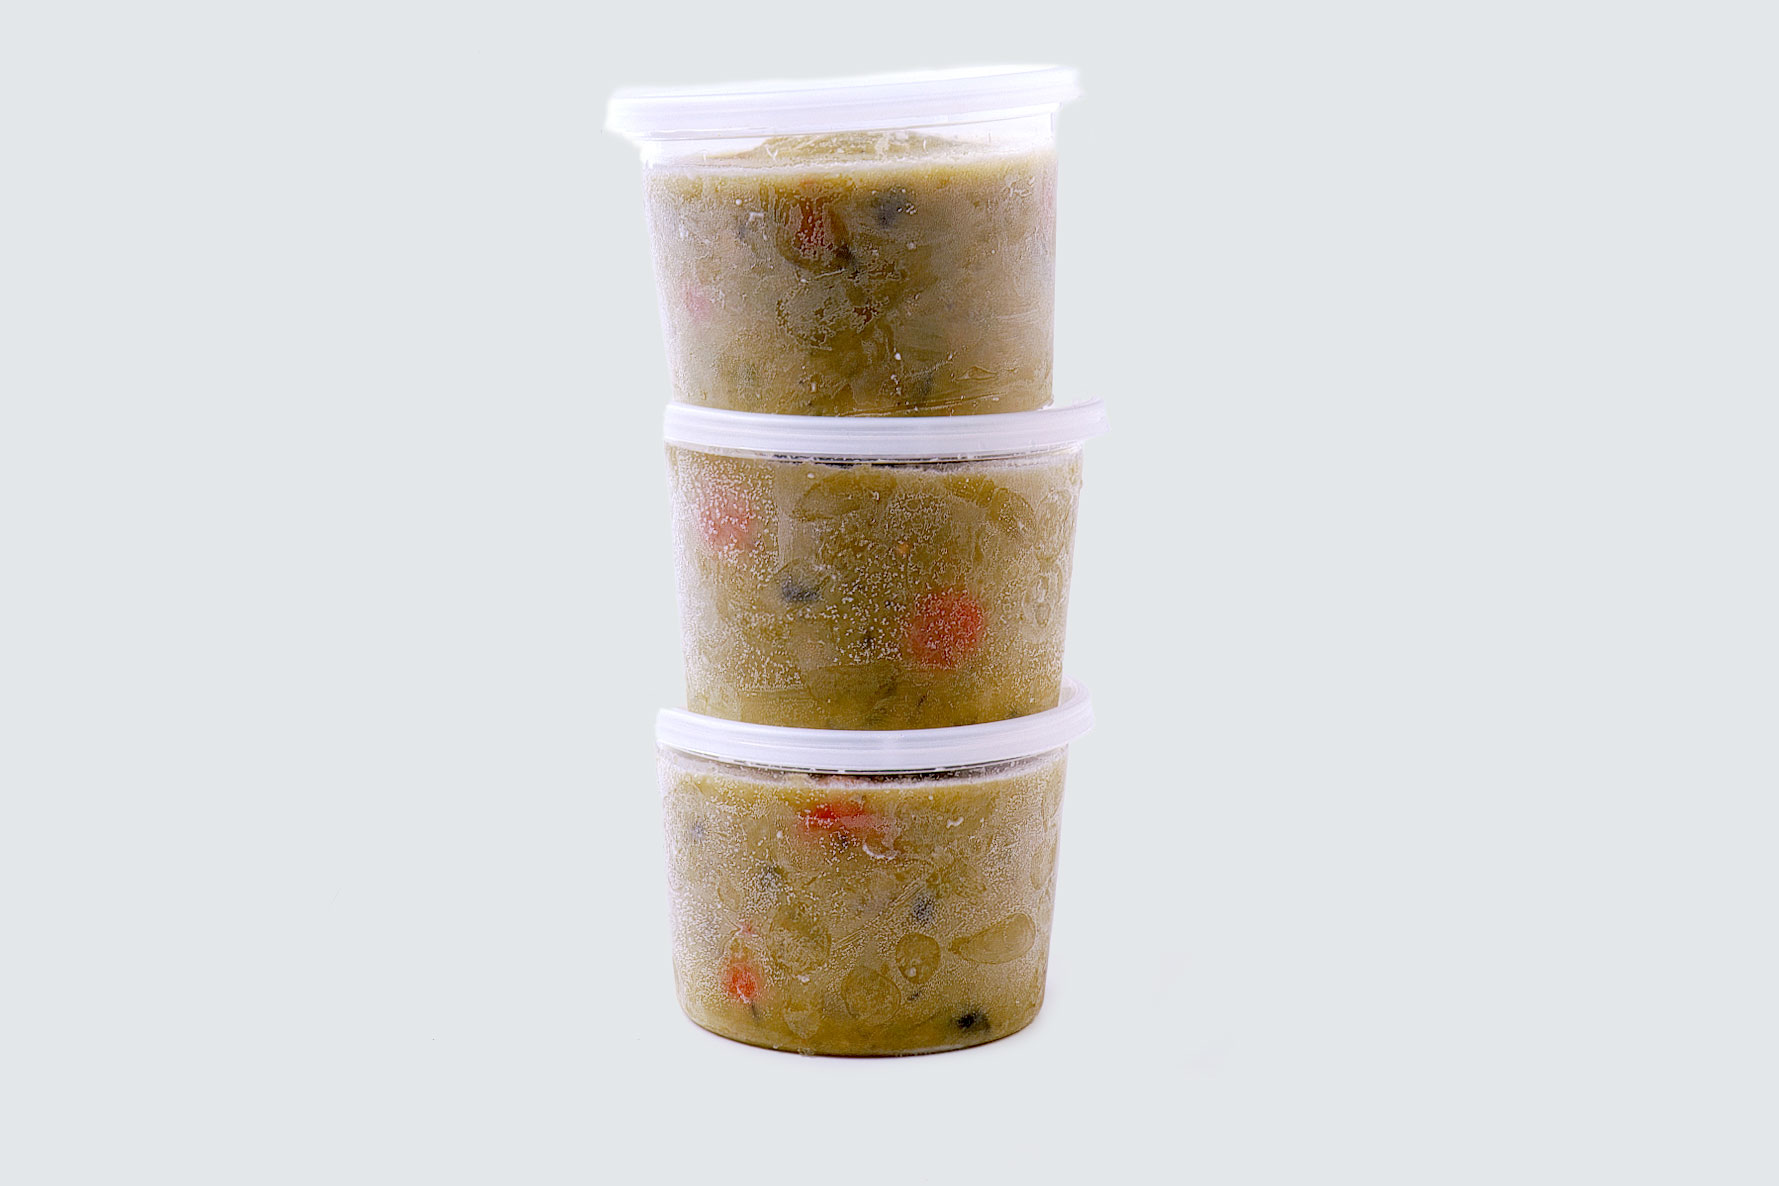 vegetarian split pea soup containers